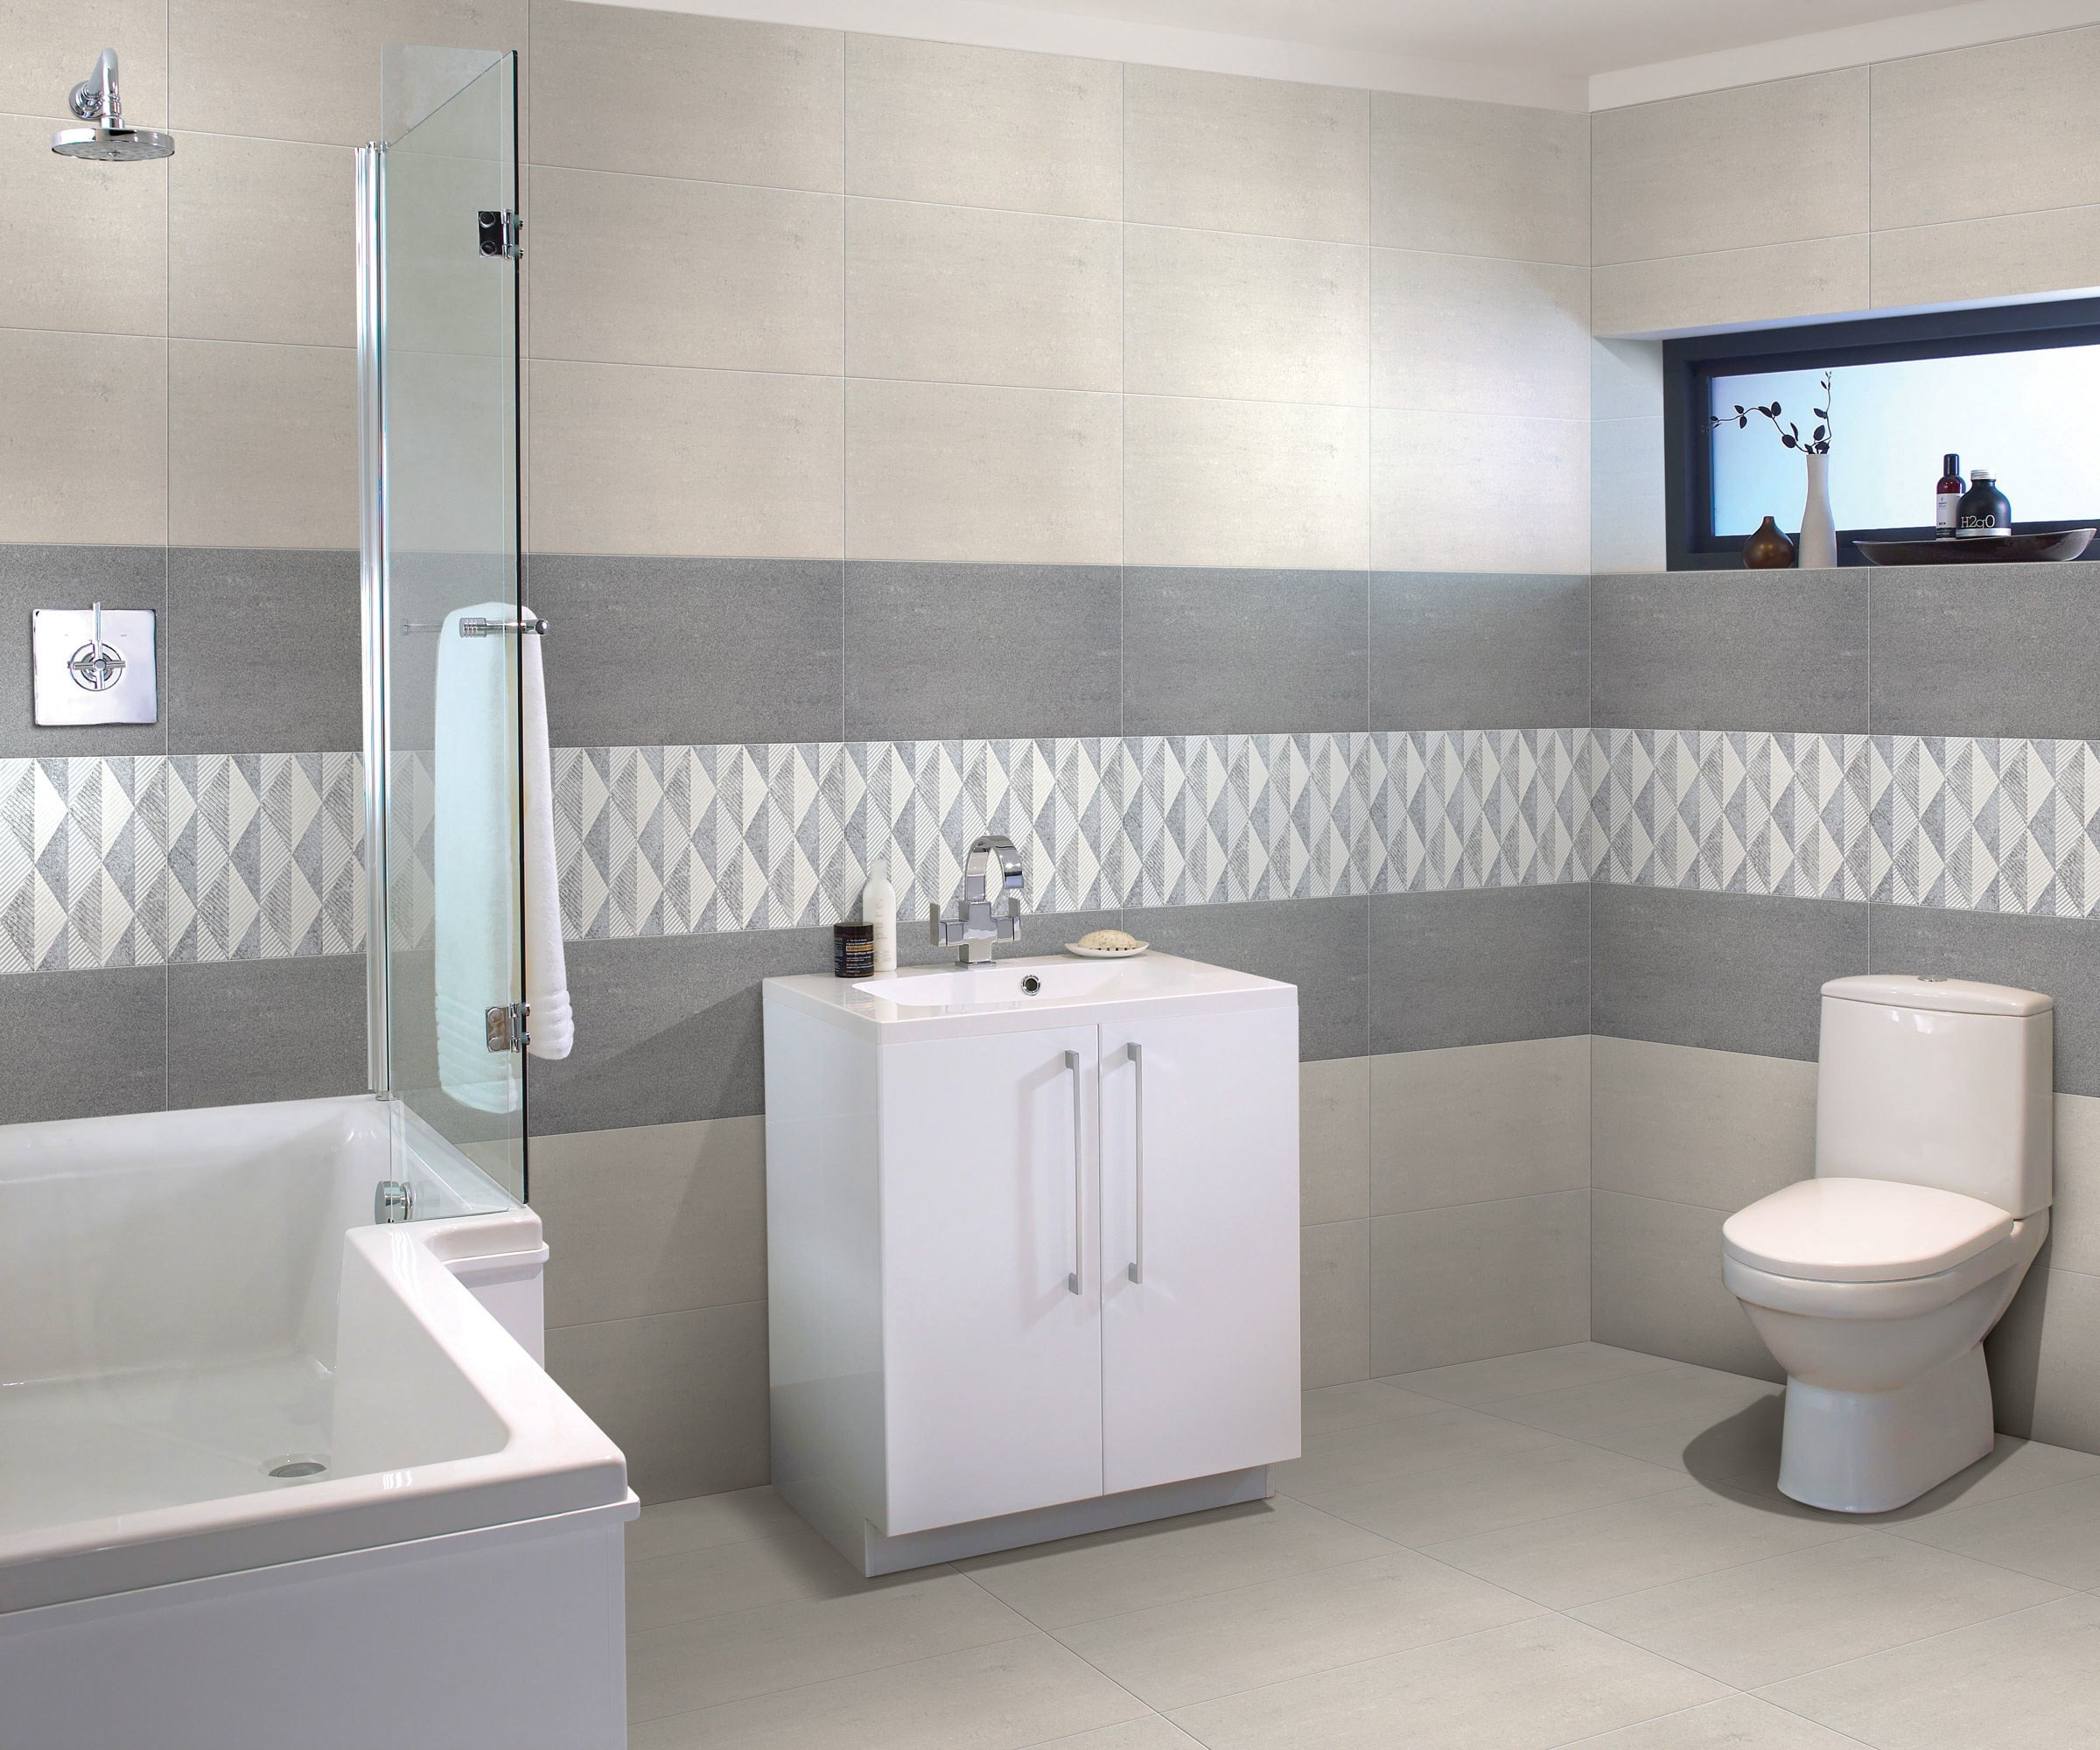 Indian Bathroom Tiles Design Pictures | by putra sulung ...